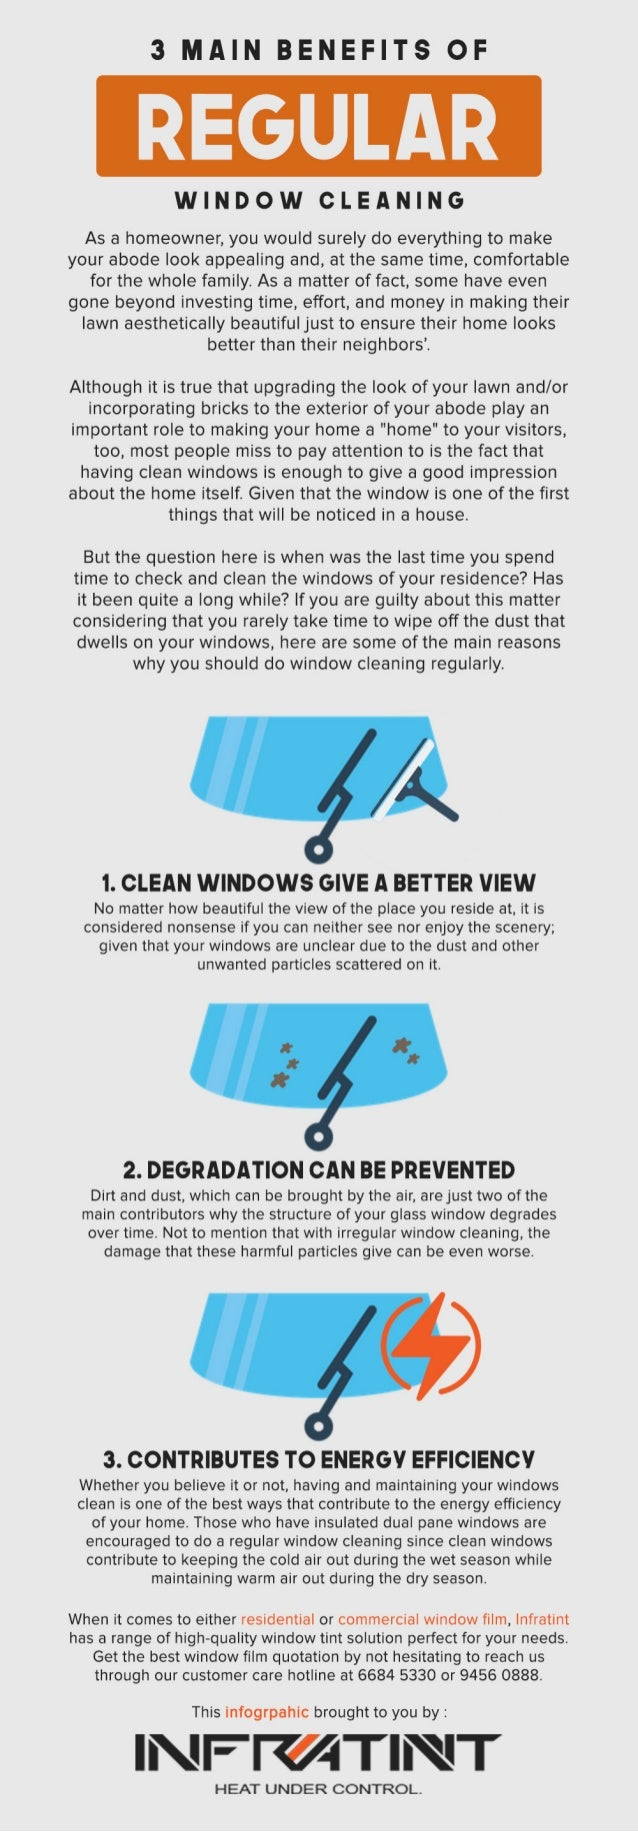 3 main benefits of regular window cleaning